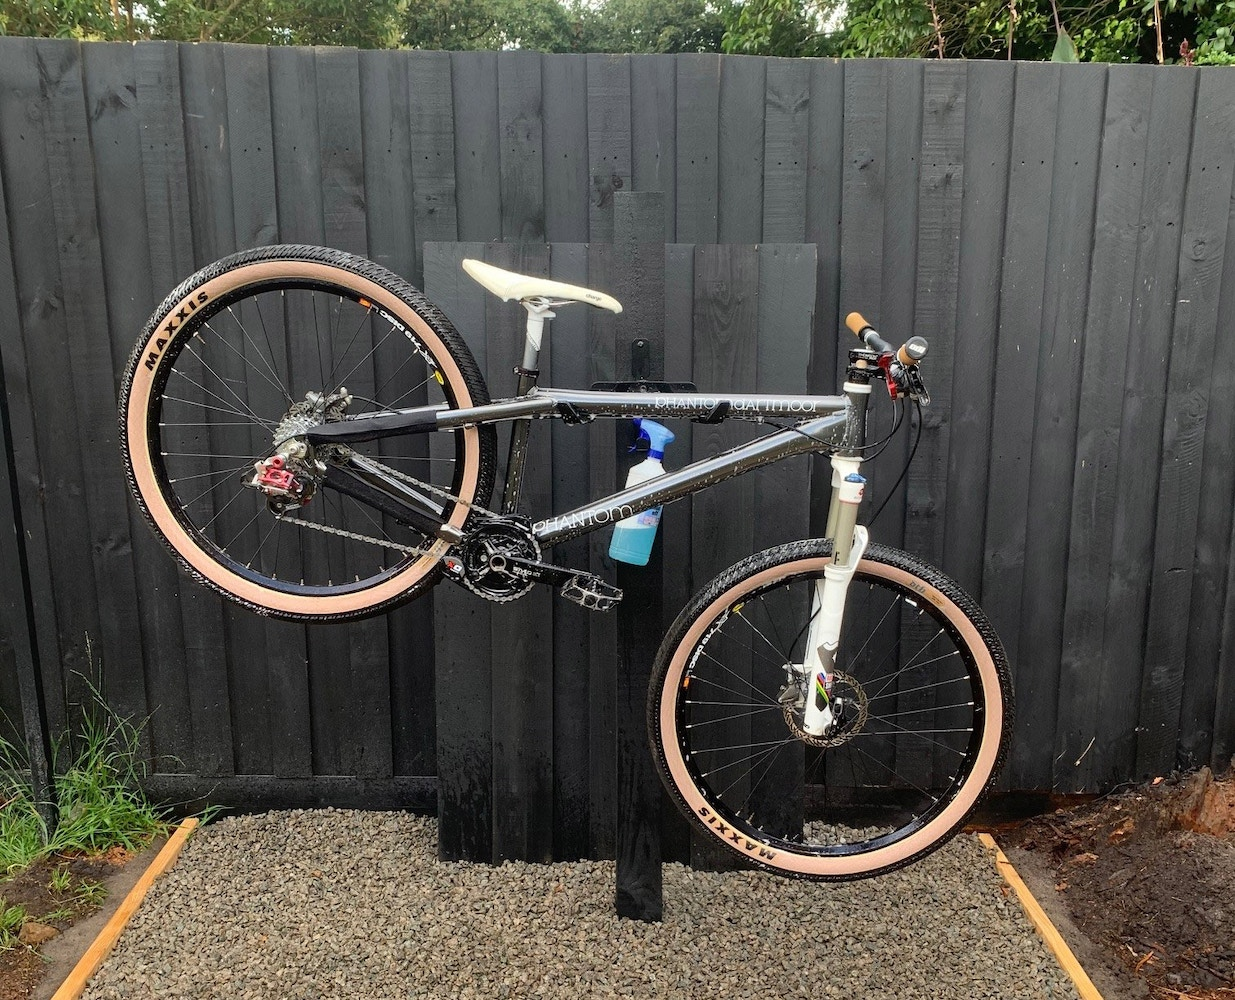 The Ultimate Guide To Building A DIY Bike Wash Stand